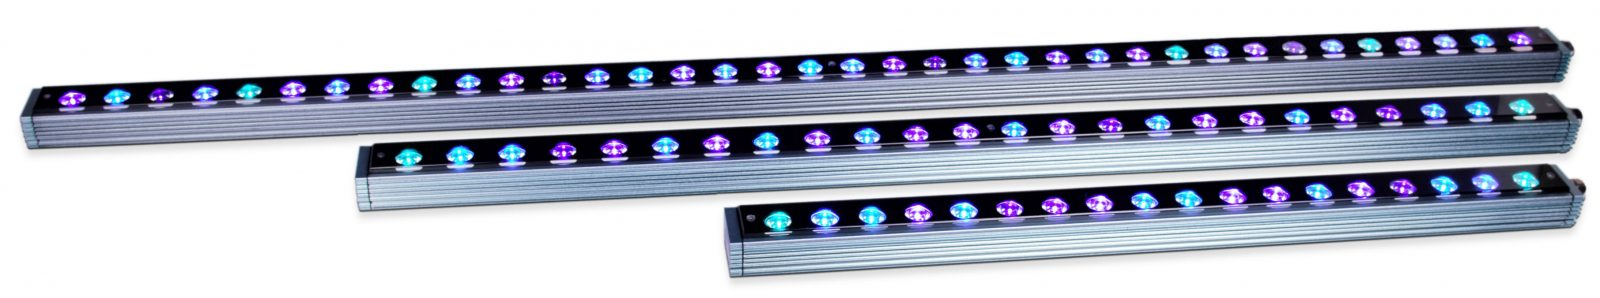 acuario de arrecife Blue plus OR2 LED bar